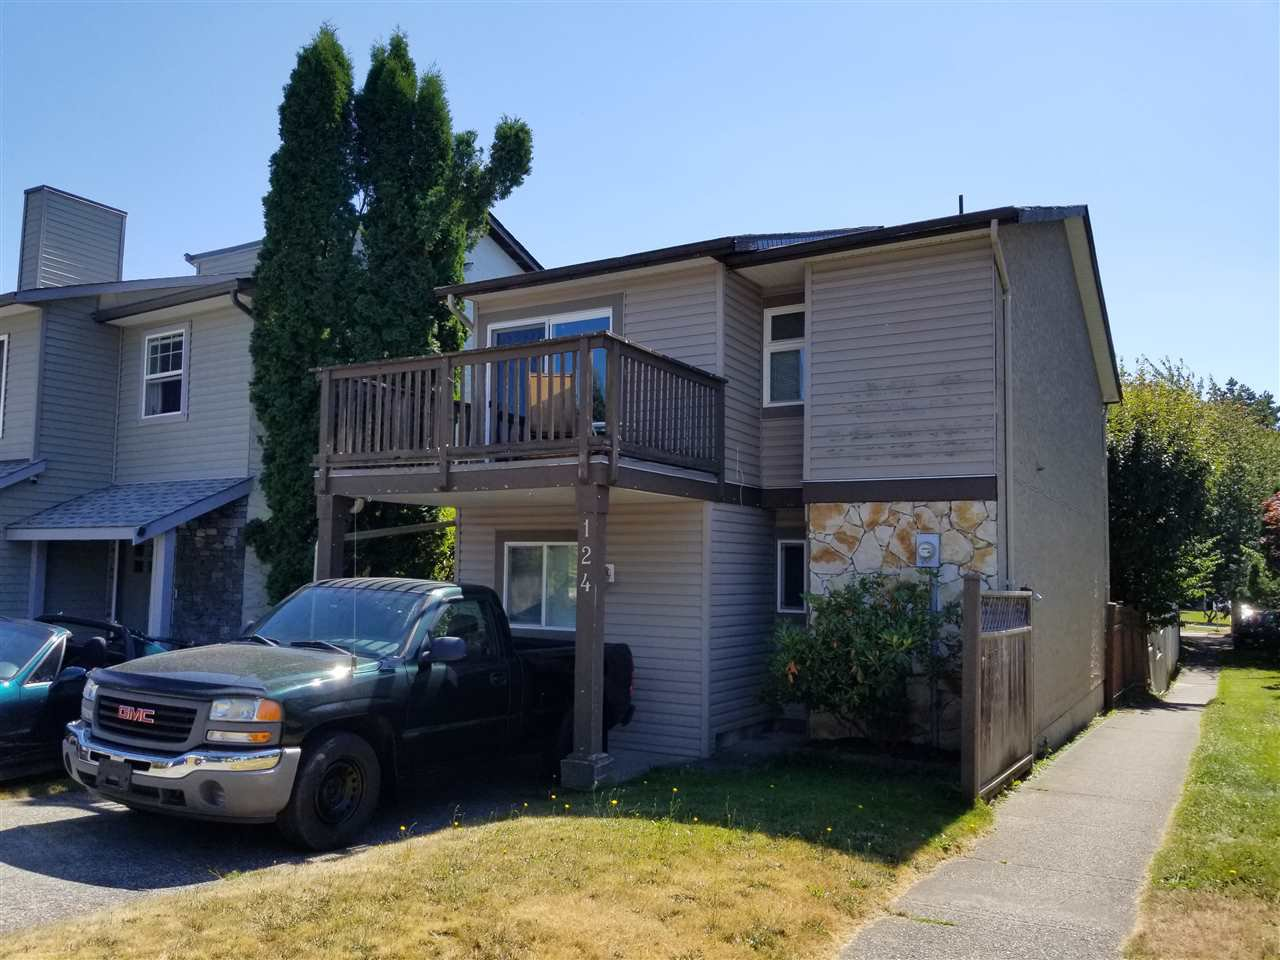 """Main Photo: 124 SPRINGFIELD Drive in Langley: Aldergrove Langley House for sale in """"Springfield Village"""" : MLS®# R2490873"""